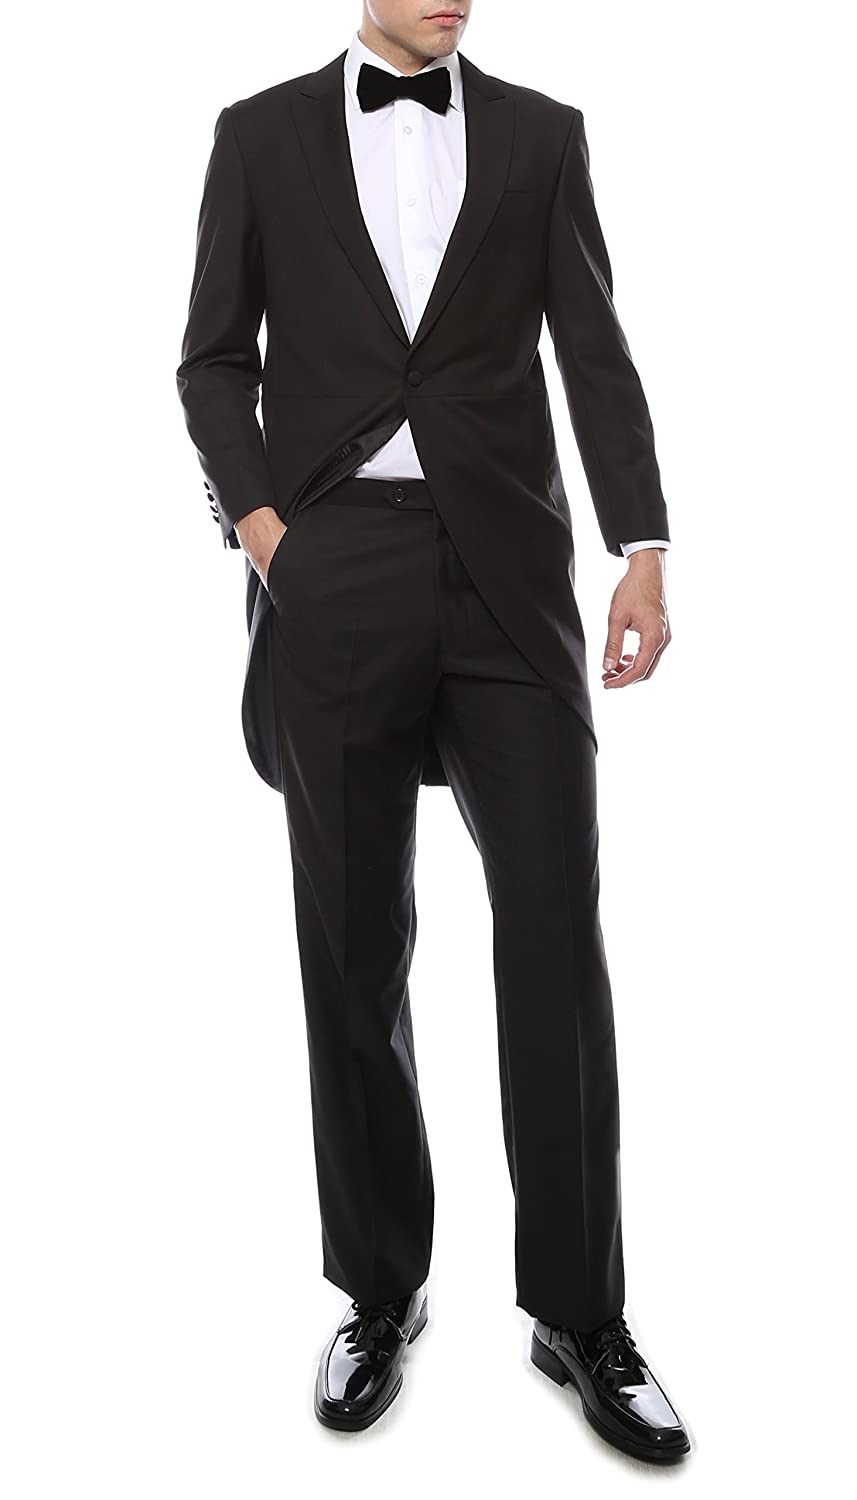 Edwardian Men's Fashion & Clothing Victorian Tail Tuxedo  AT vintagedancer.com